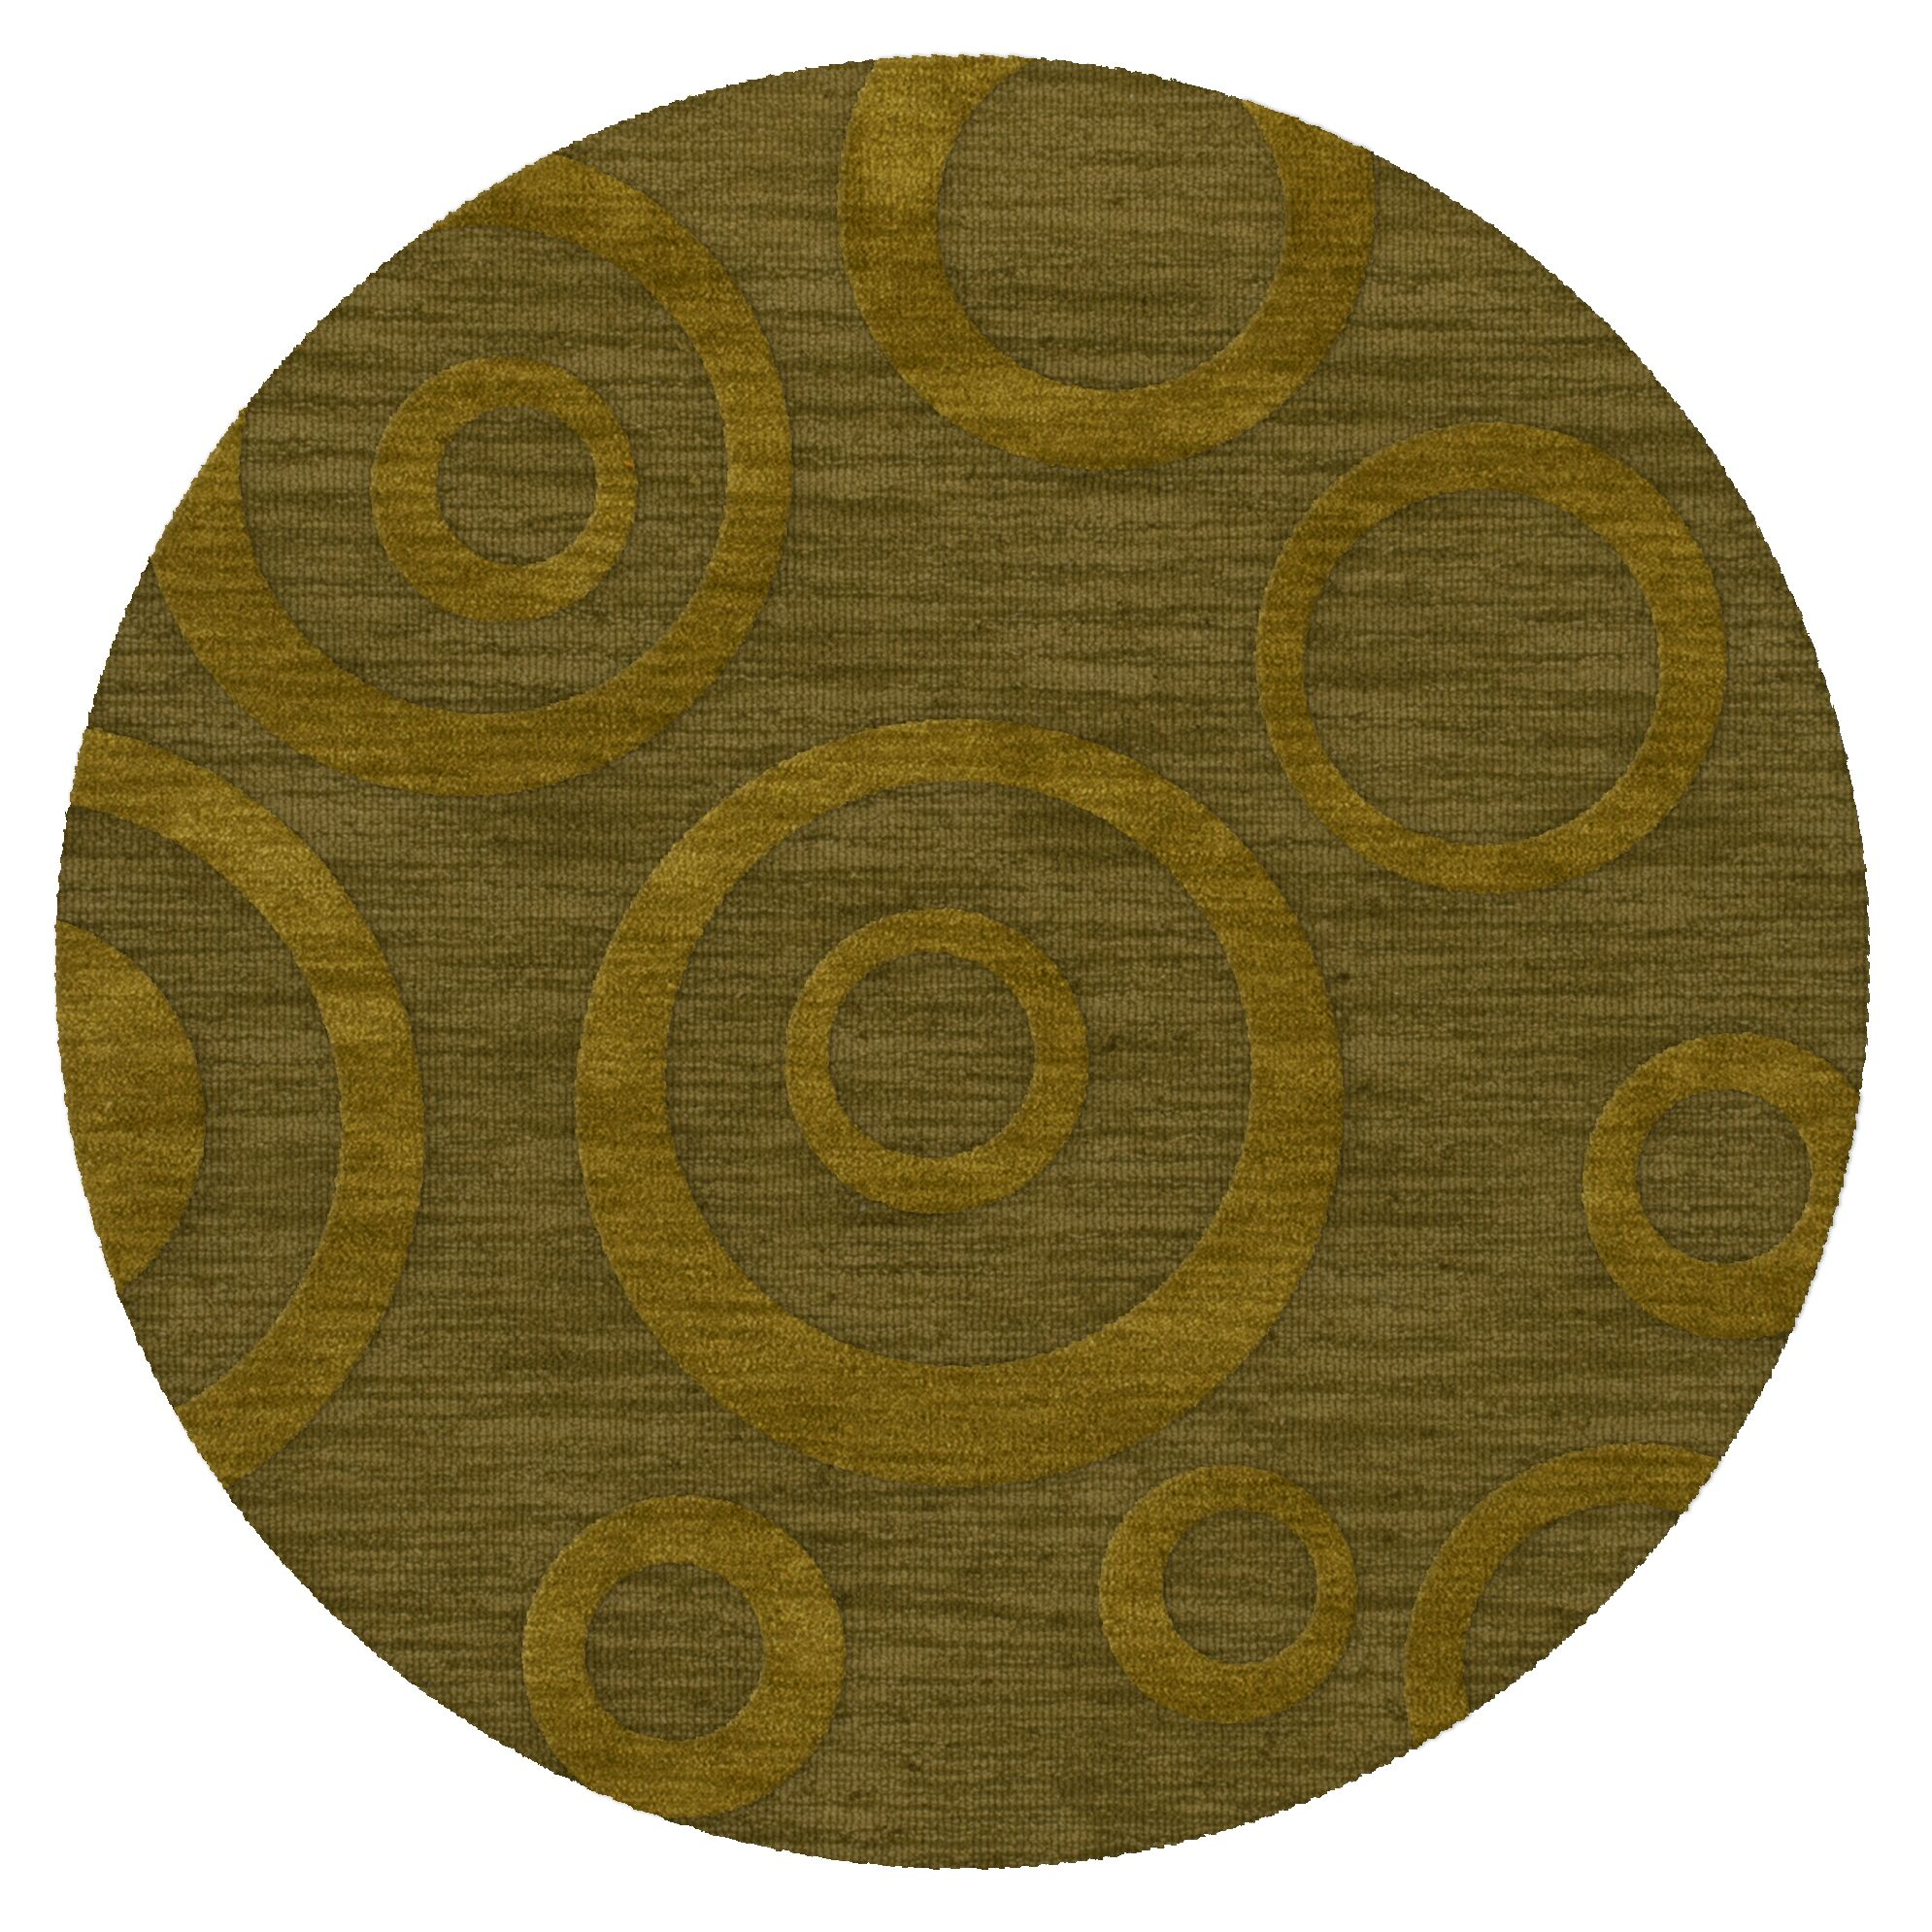 Dover Tufted Wool Avocado Area Rug Rug Size: Round 8'